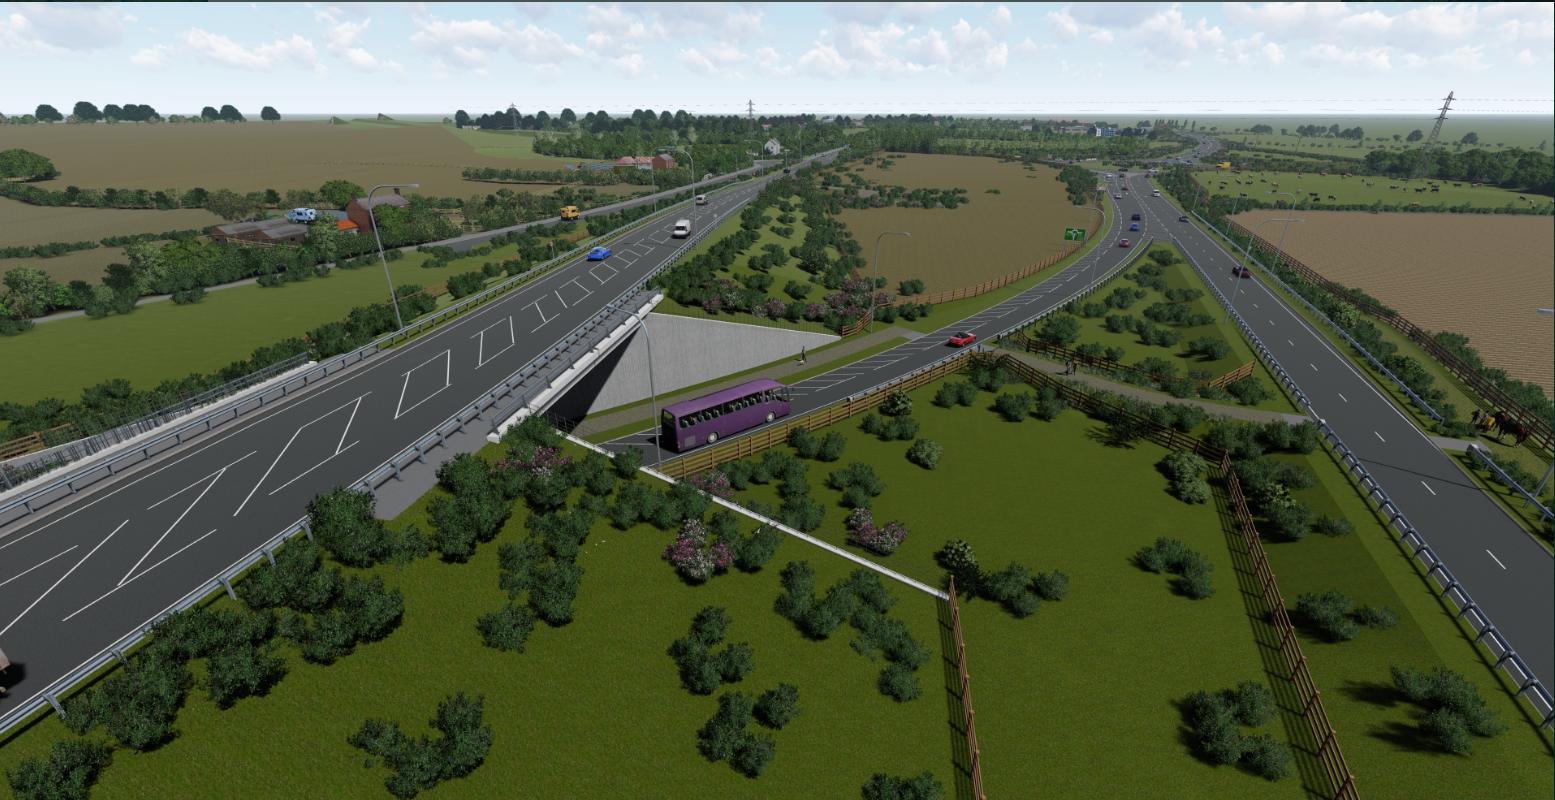 View of the new A164 bridge passing over the A1079 looking north towards Jocks Lodge